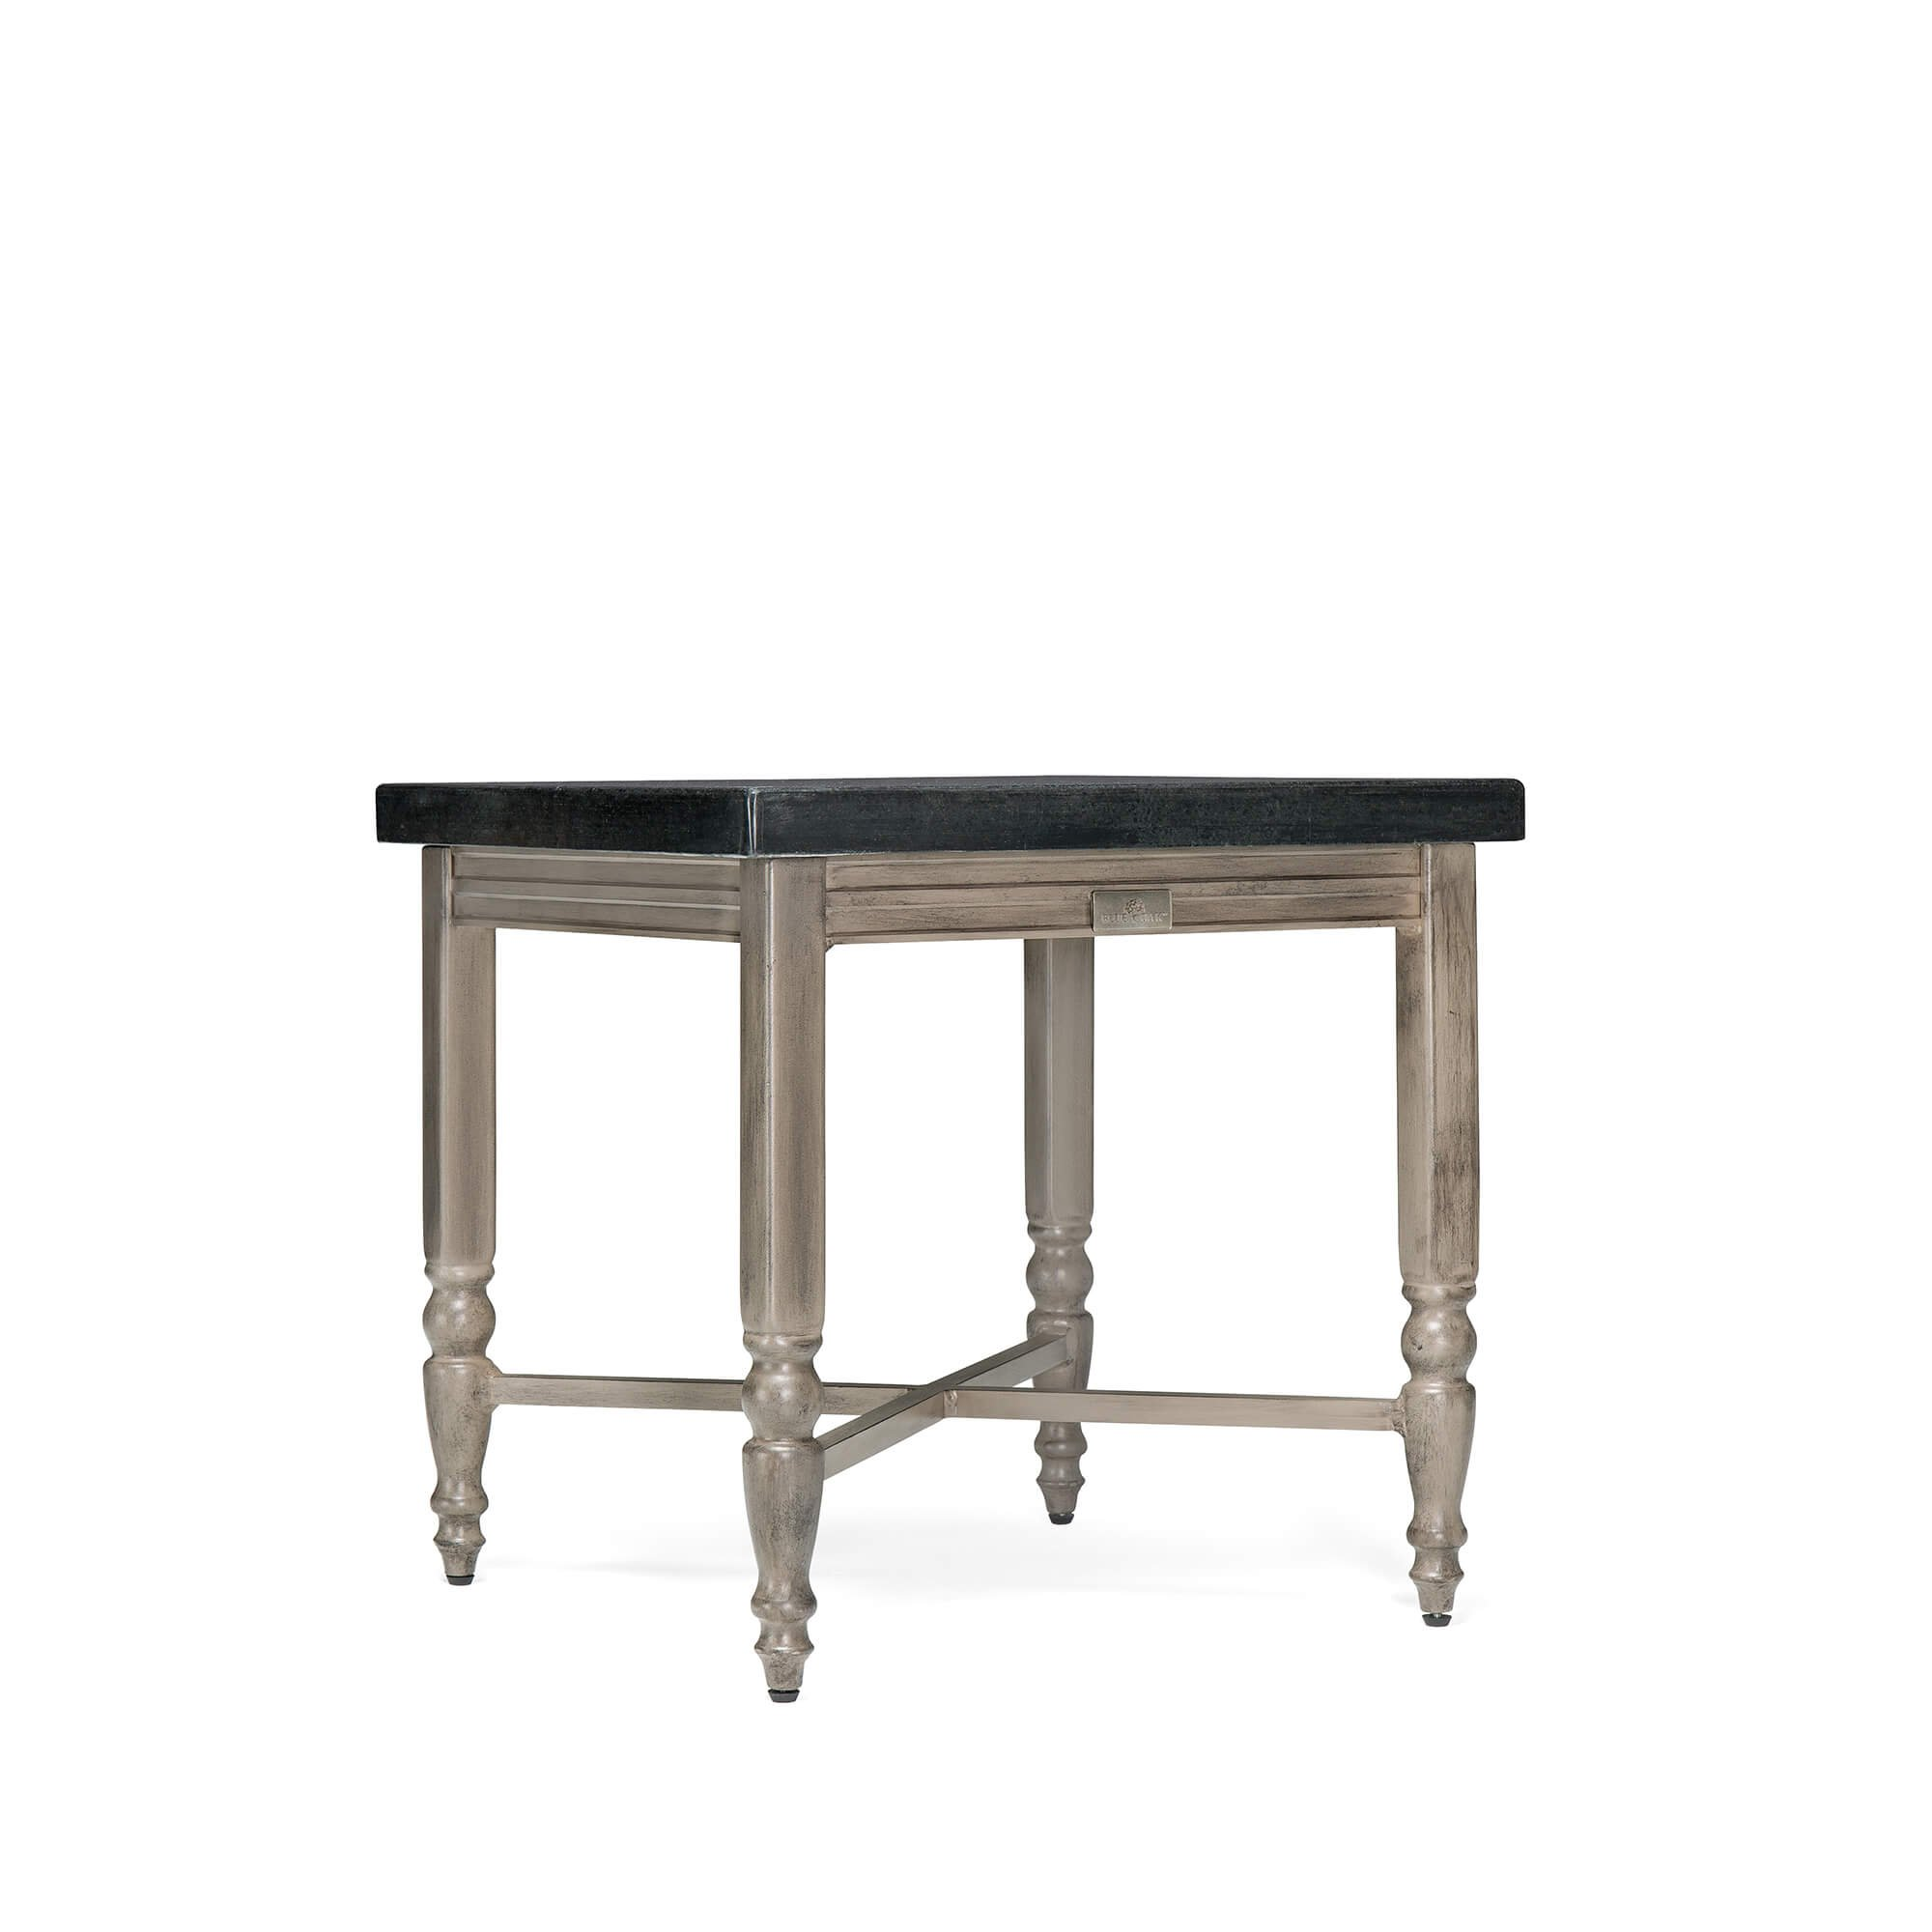 Blue Oak Outdoor Saylor Patio Furniture Natural Stone Top Side Table